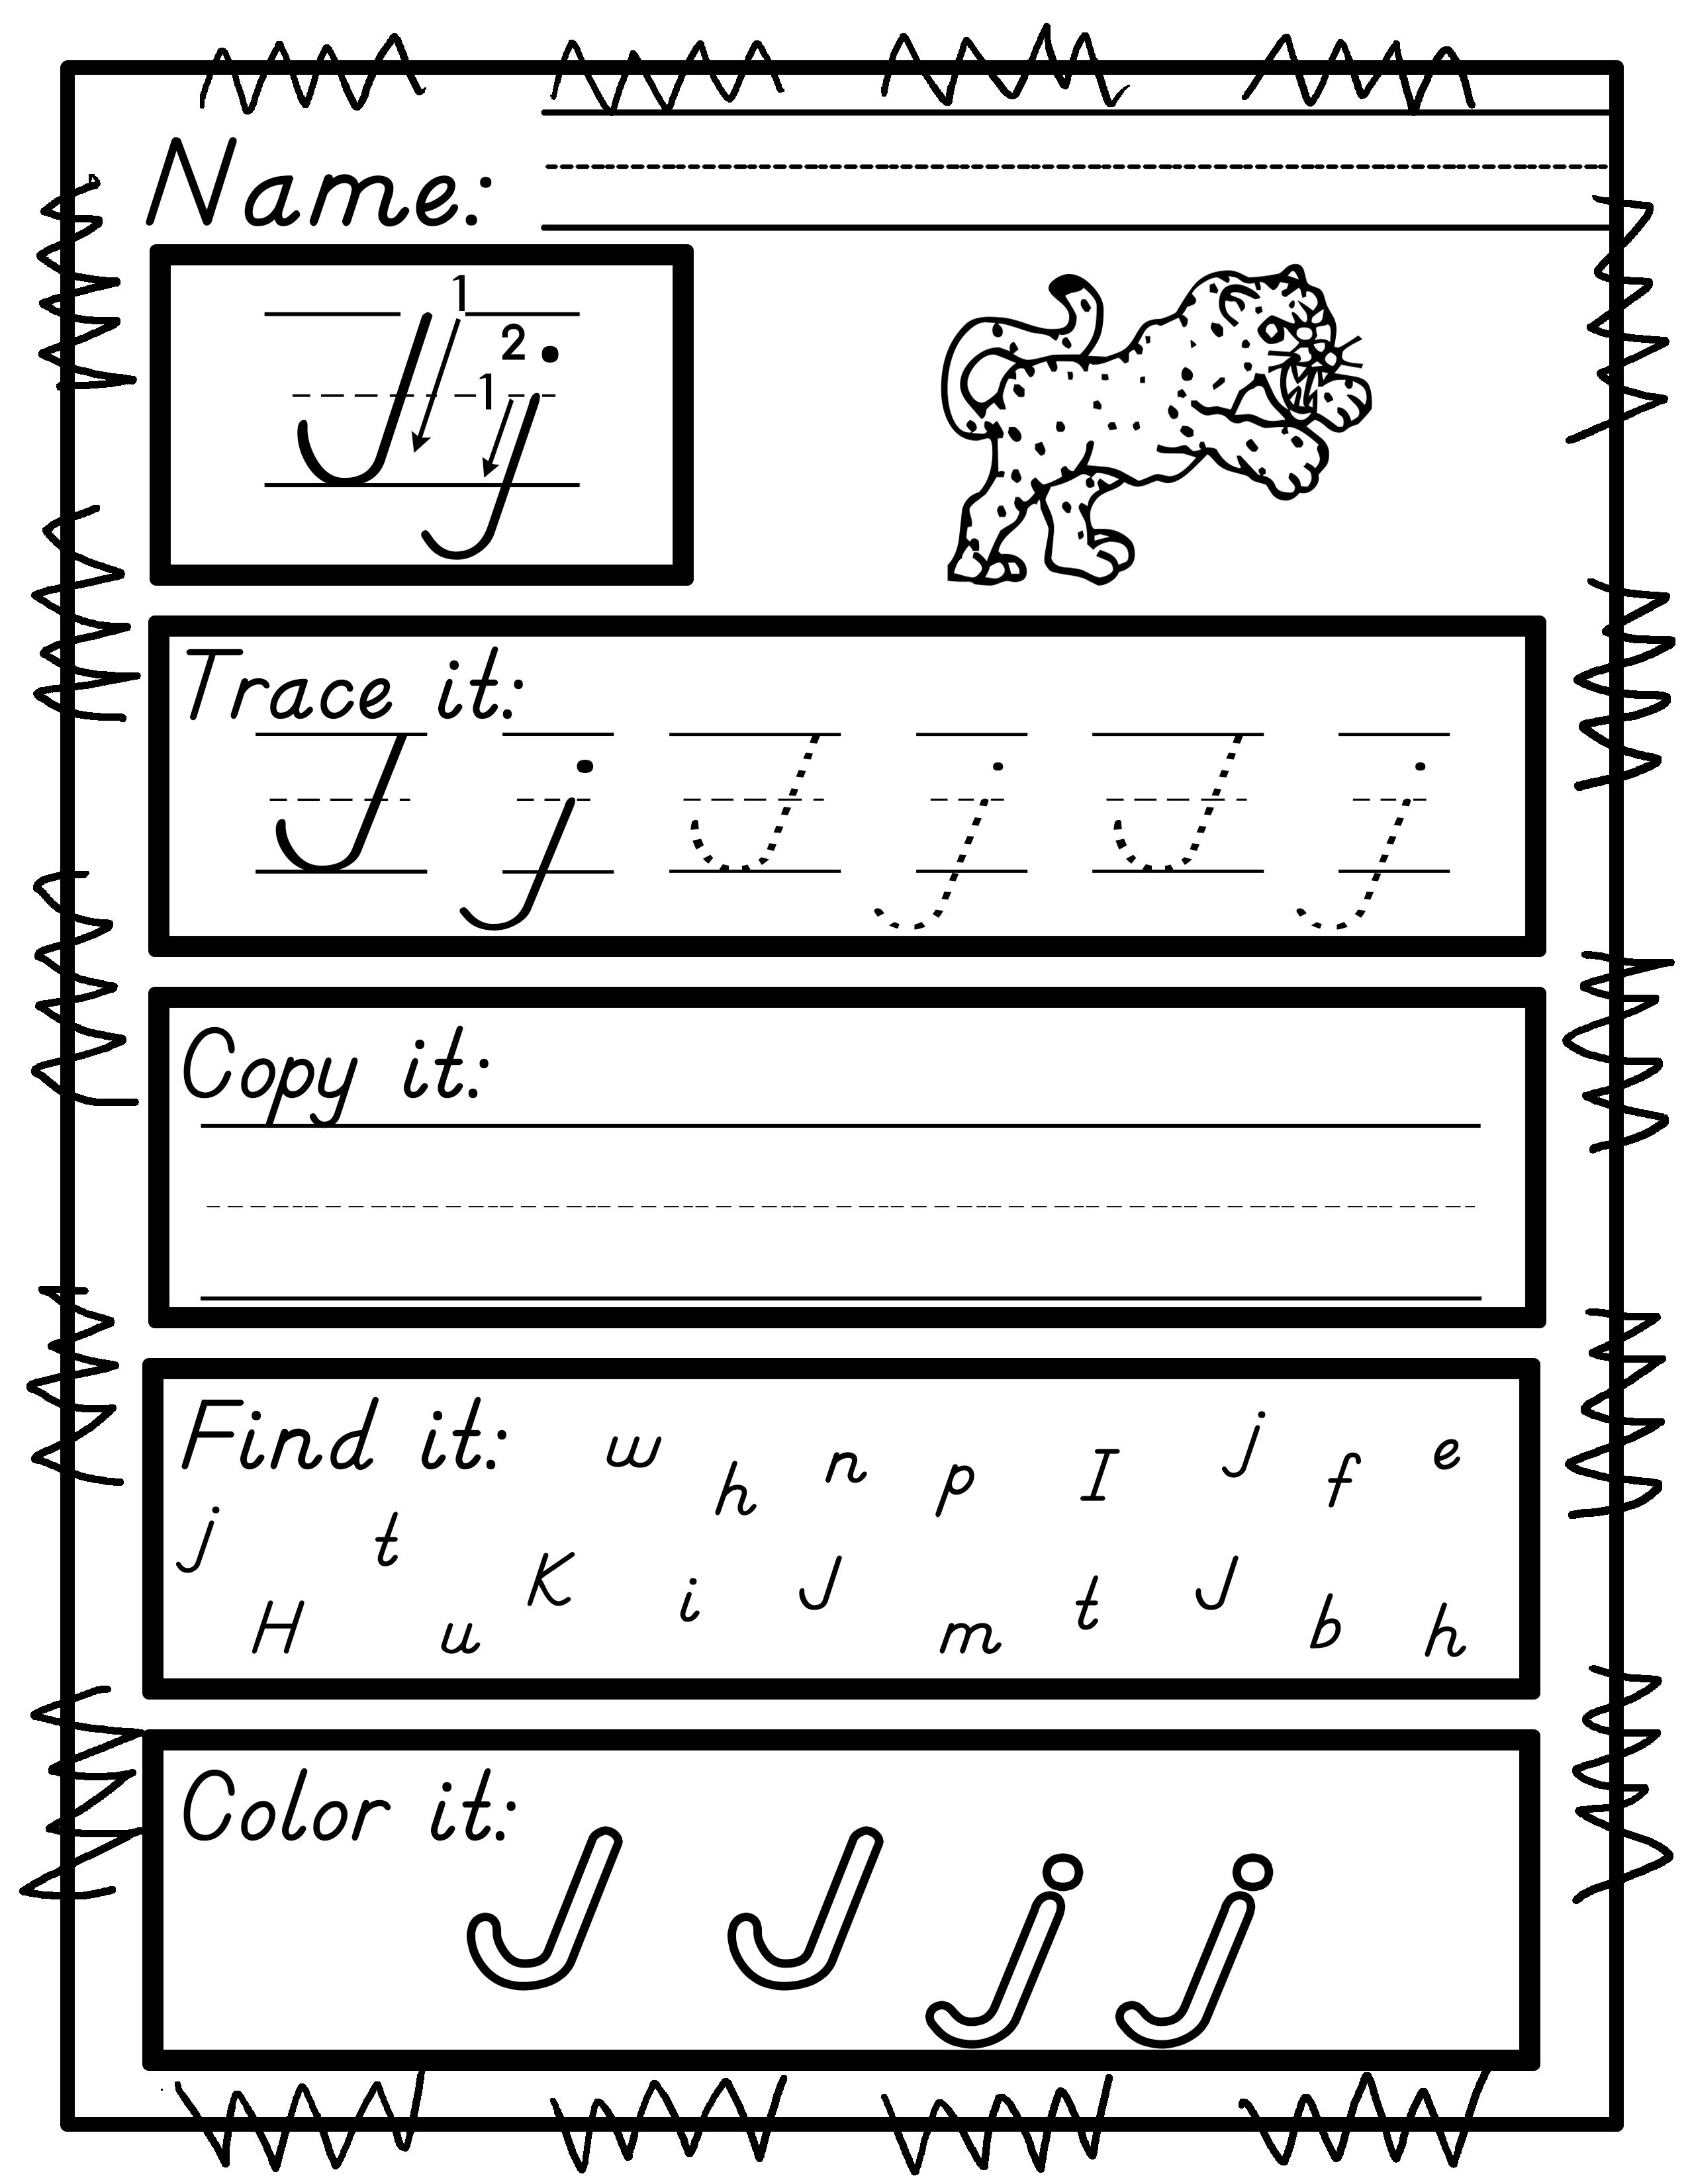 Worksheets D Nealian Handwriting Worksheets worksheets for dnealian manuscript handwriting practice a z no prep print and go us uk australian spellings included